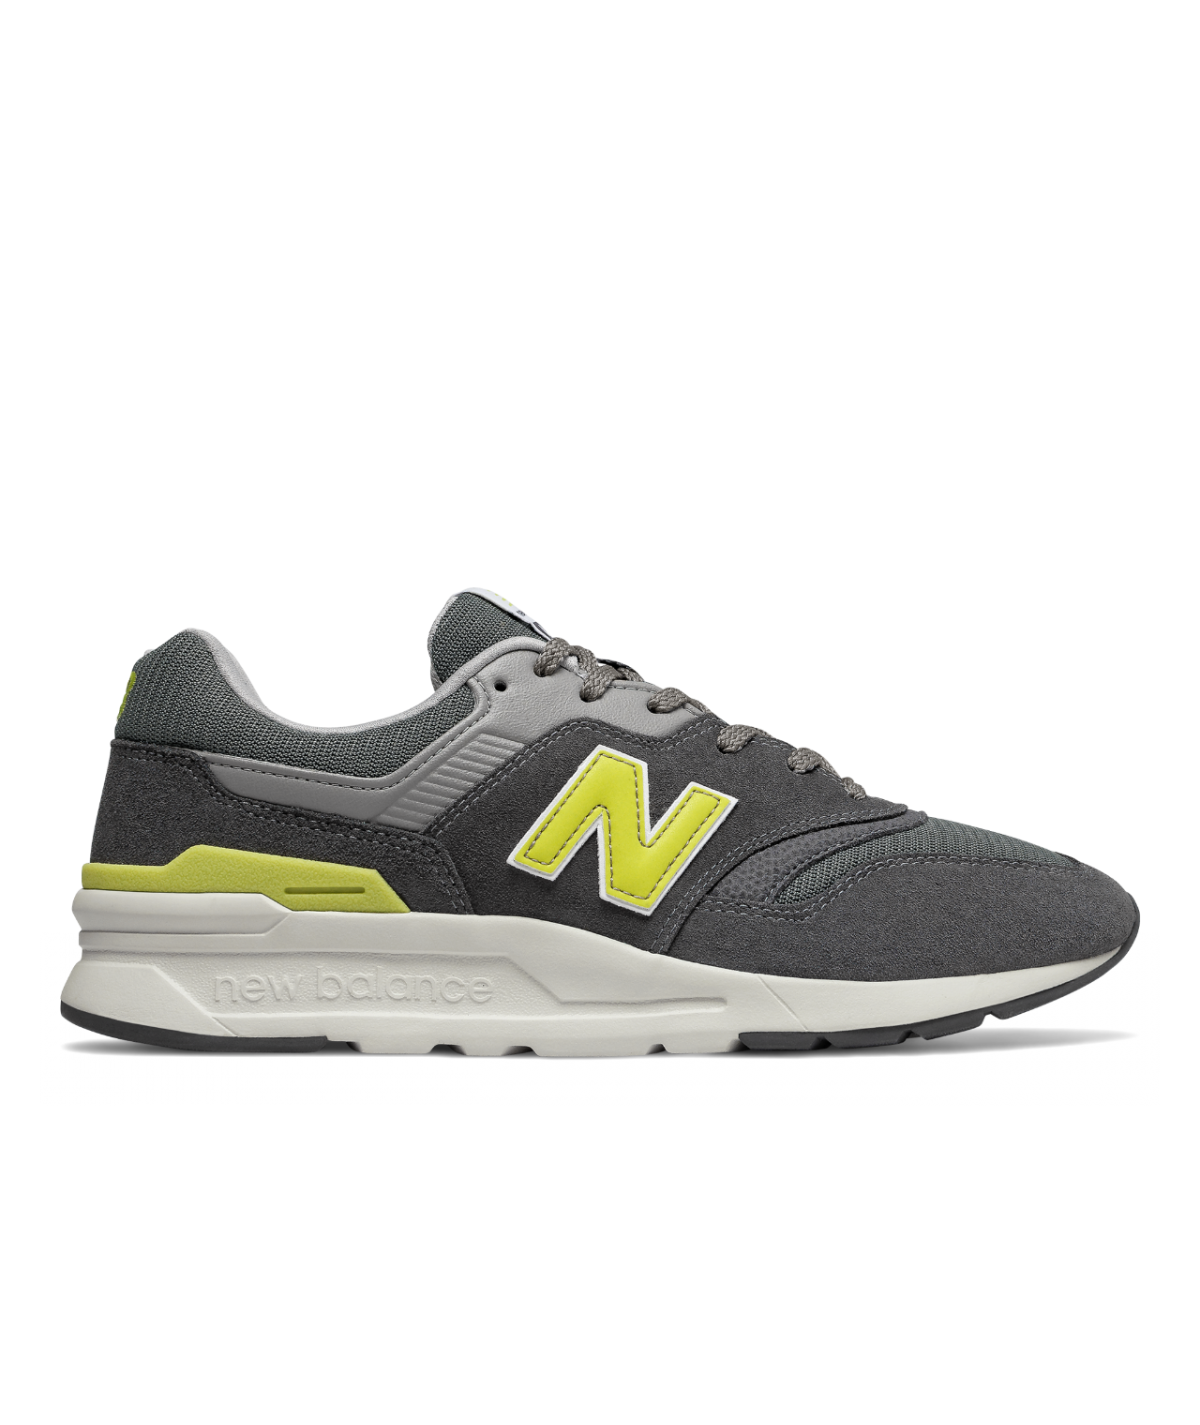 New Balance 997 HDJ Baskets gris homme